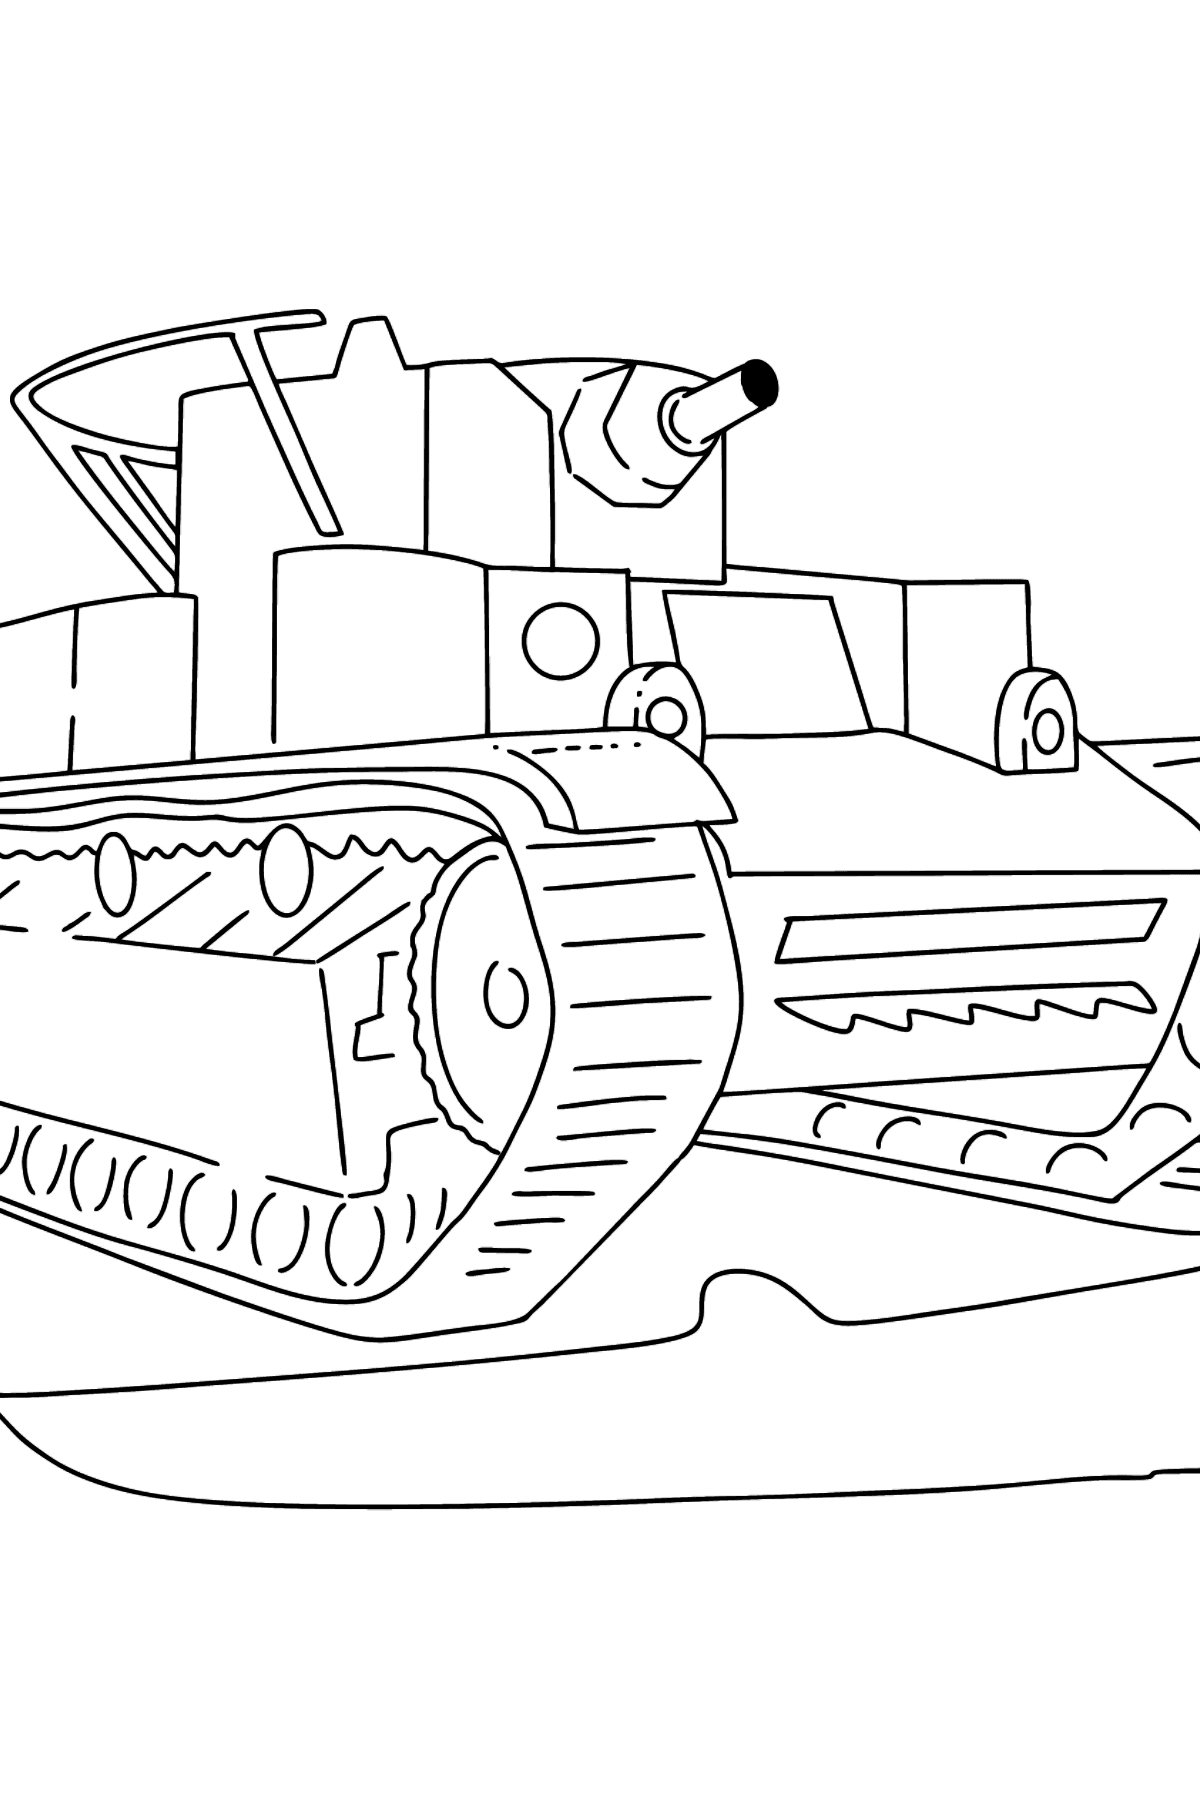 Tank T 28 coloring page - Coloring Pages for Kids